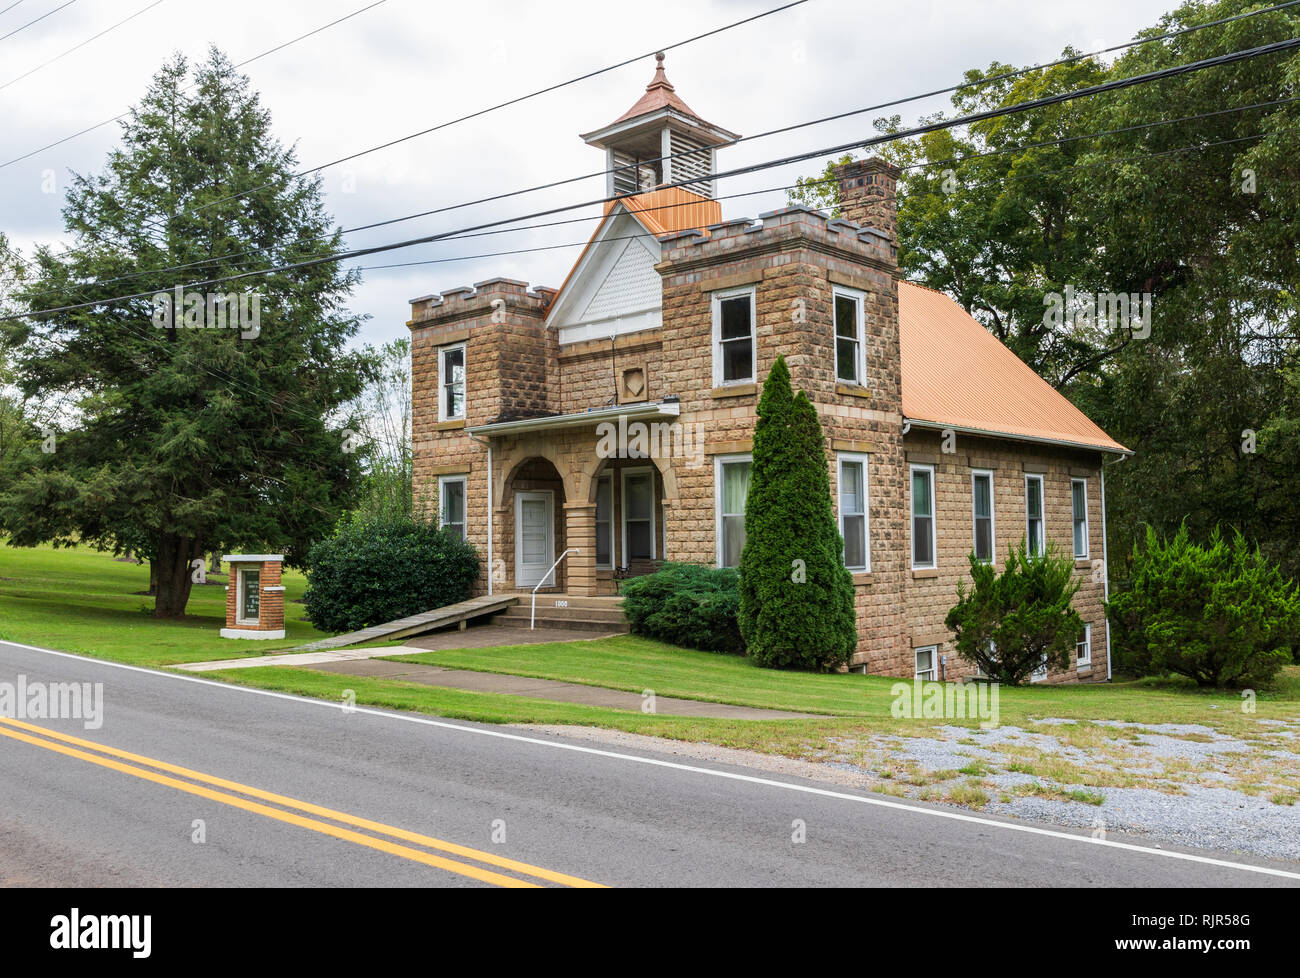 CHUCKEY, TN, USA-10/2/18: The Upper Room, a rural church in Chuckey, TN, built in 1910, now stands empty. - Stock Image